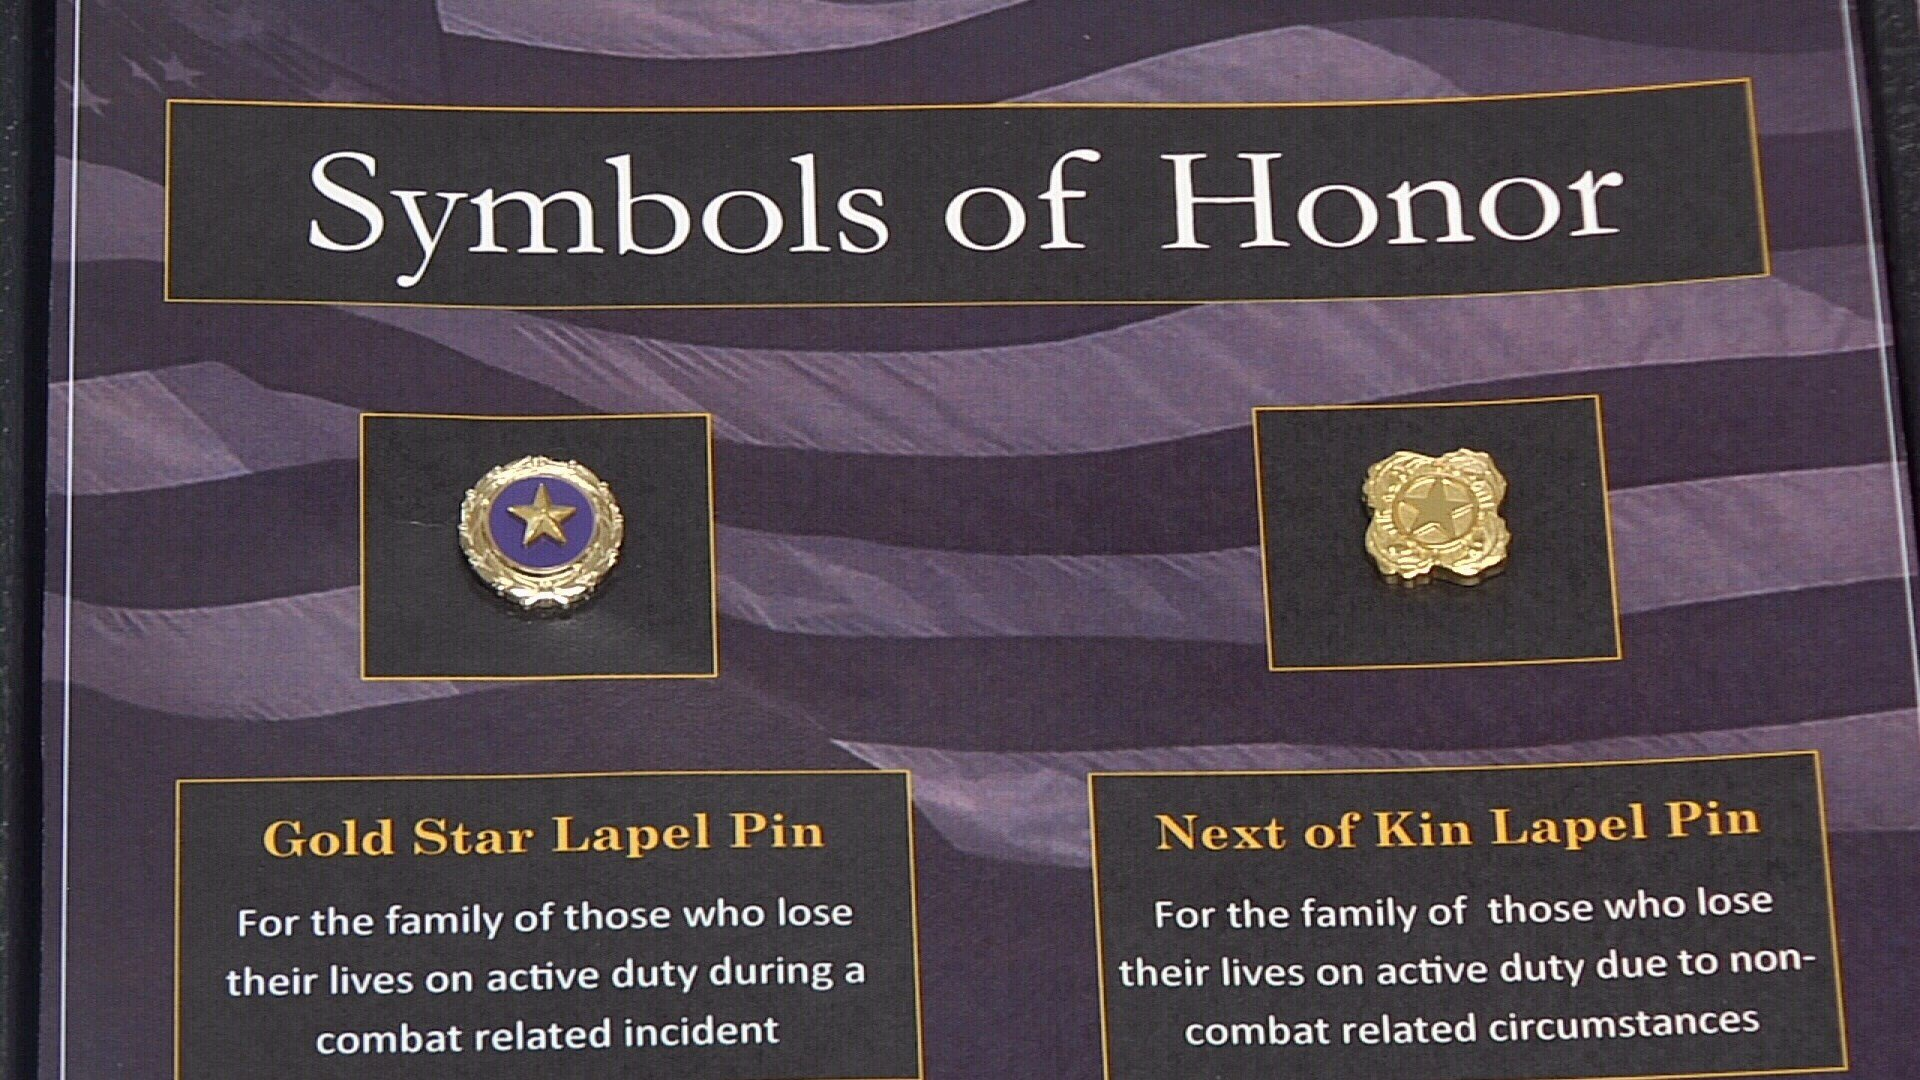 These are the symbols of honor worn by the family members of the fallen heroes.